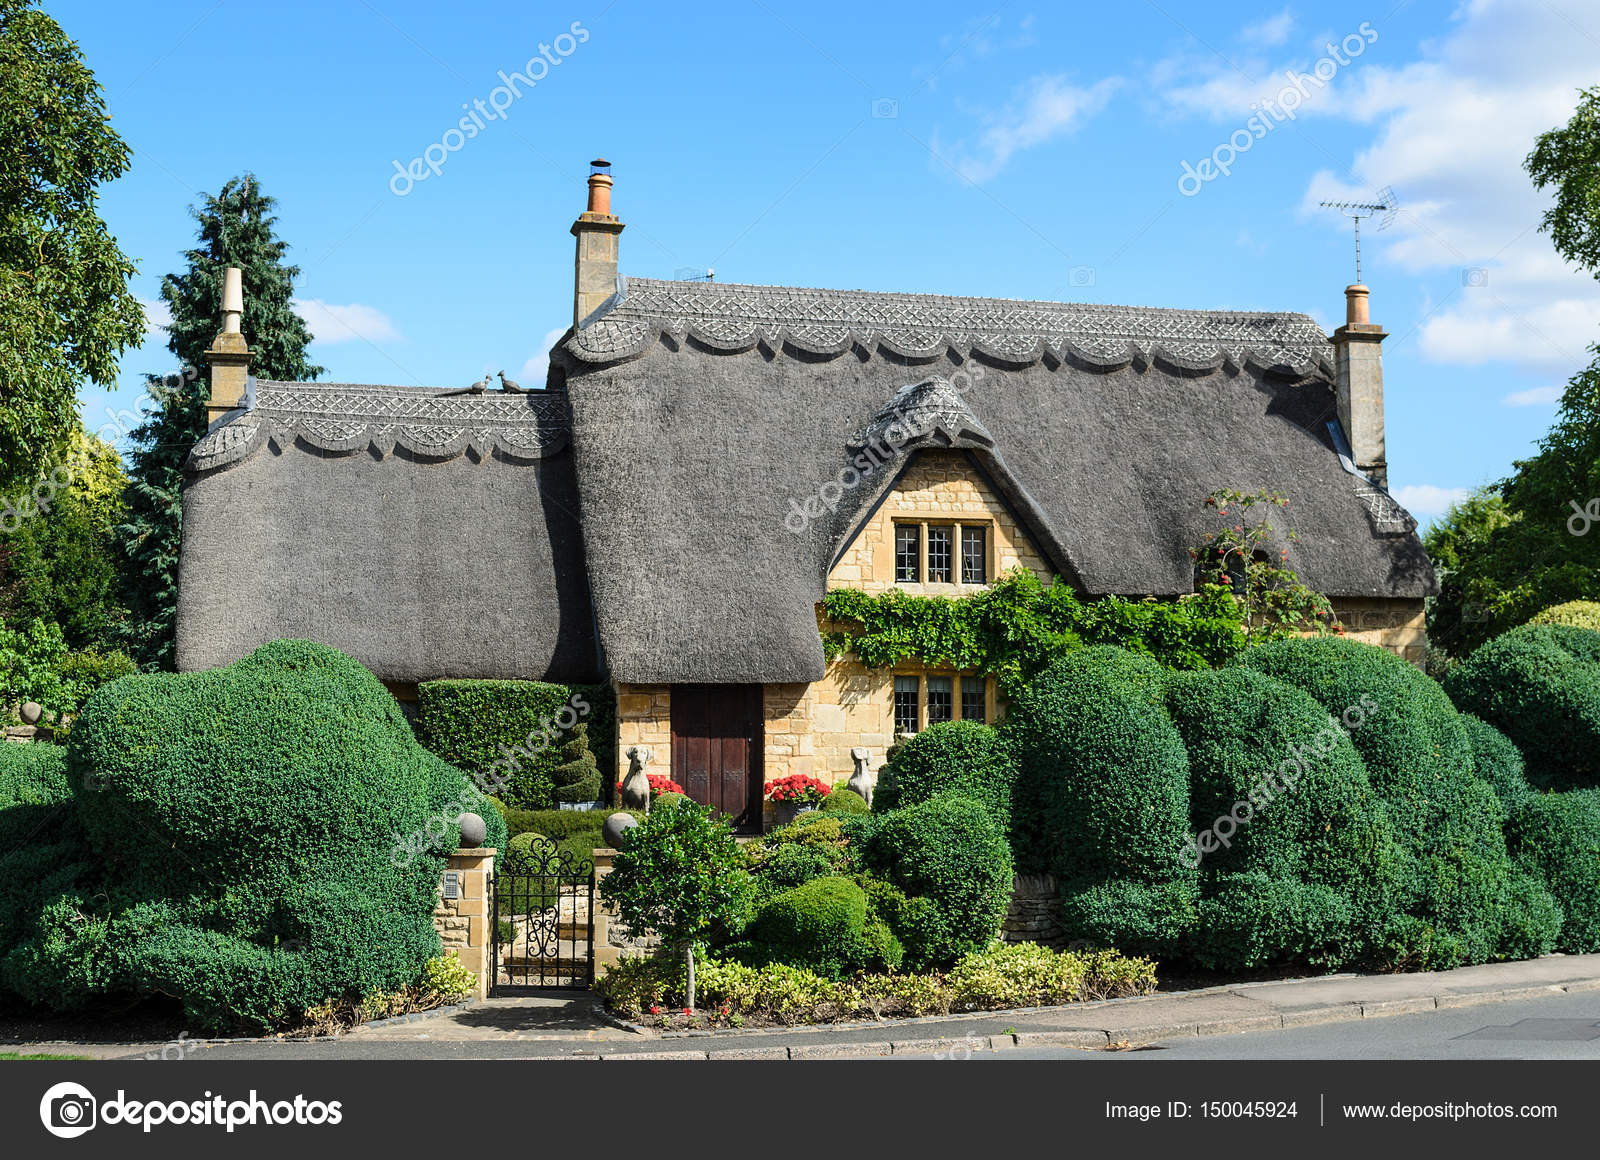 An English Thatched Cottage Built Out Of Cotswold Stone With A Beautiful Hedge In The Garden Chipping Campden Cotswolds England UK